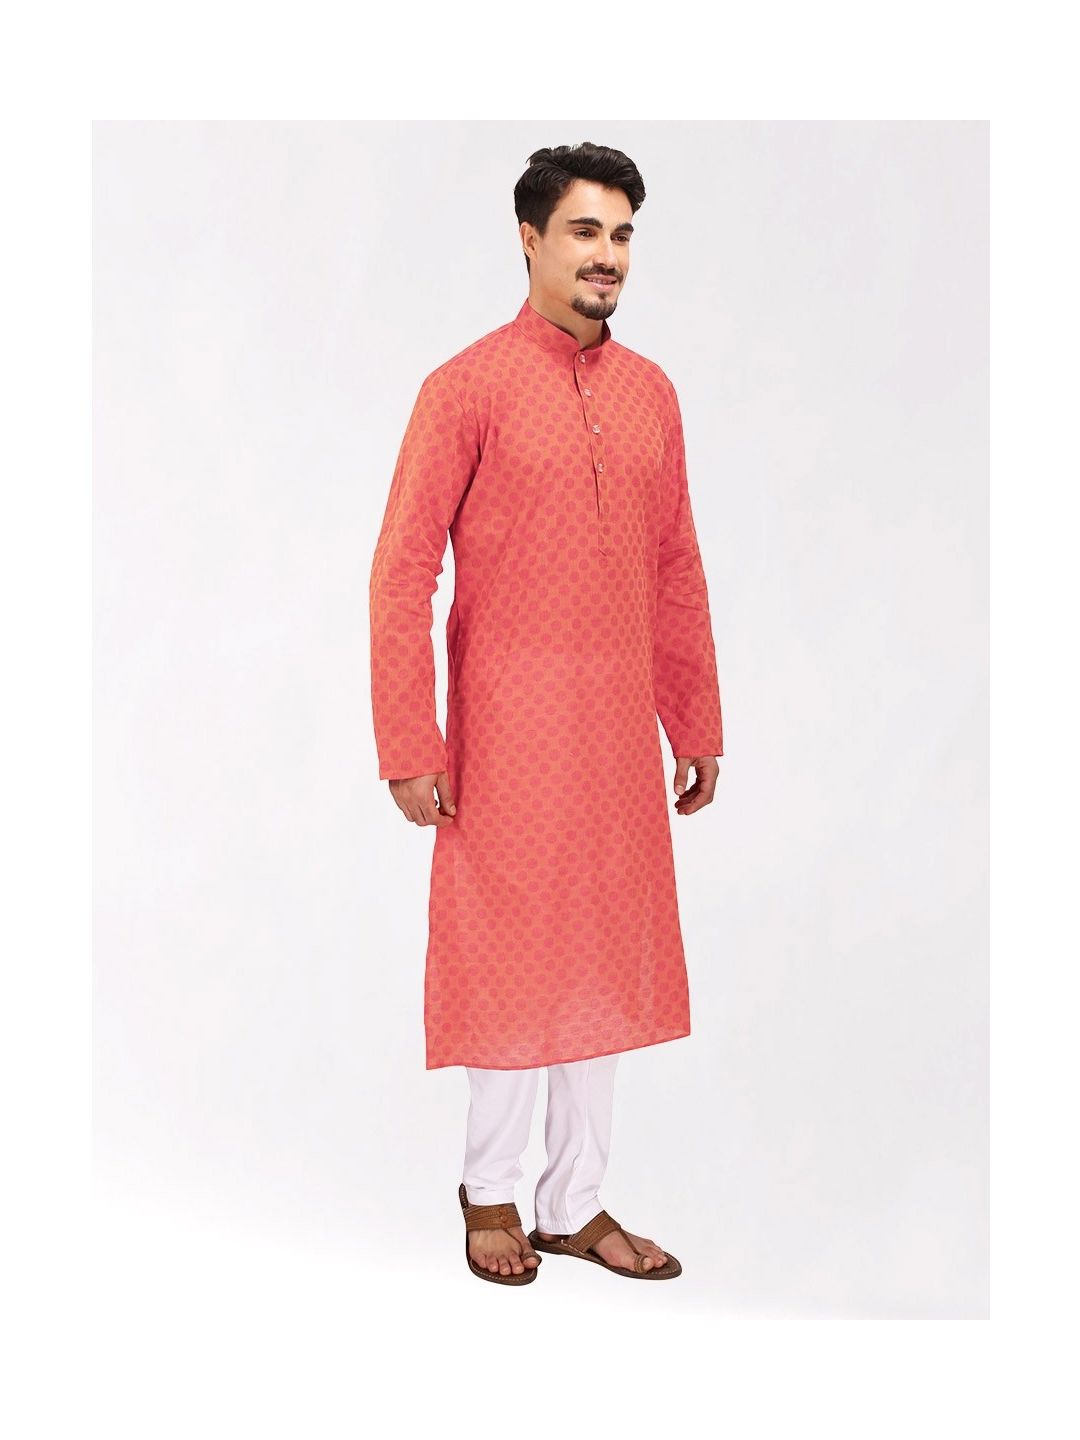 Coral Red Handloom Dobby Cotton Kurta